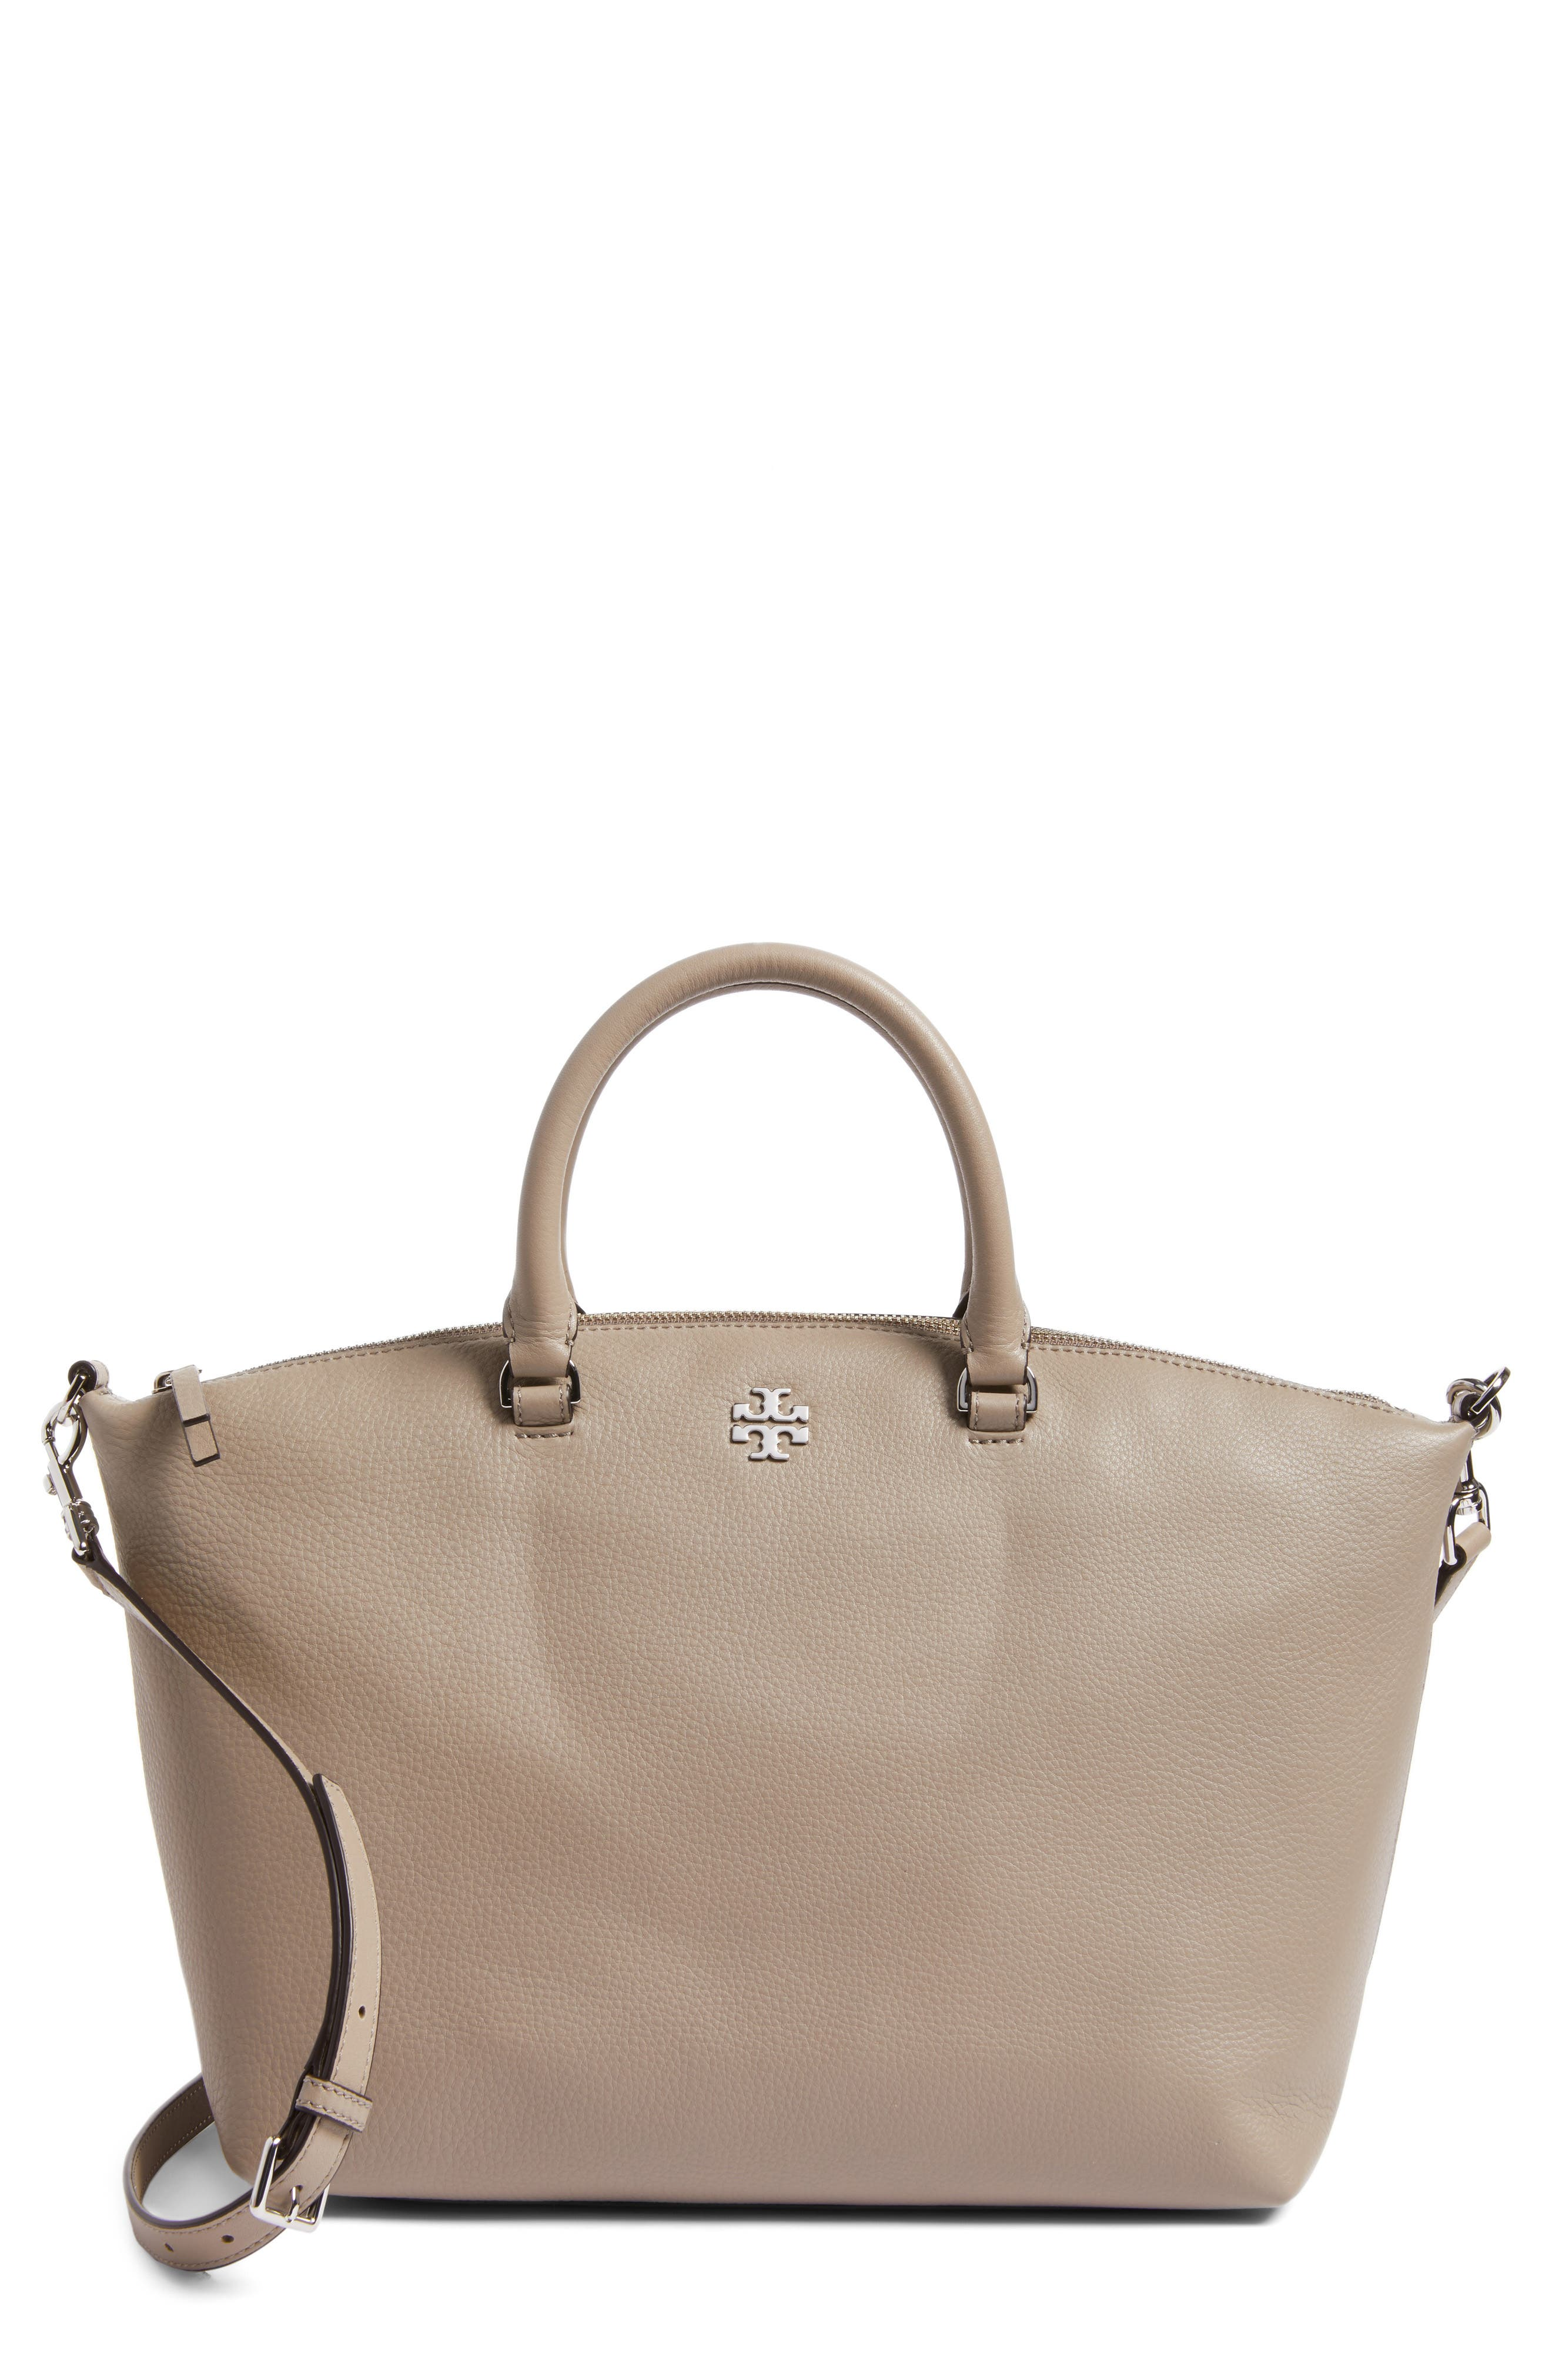 Alternate Image 1 Selected - Tory Burch Frida Leather Satchel (Nordstrom Exclusive)